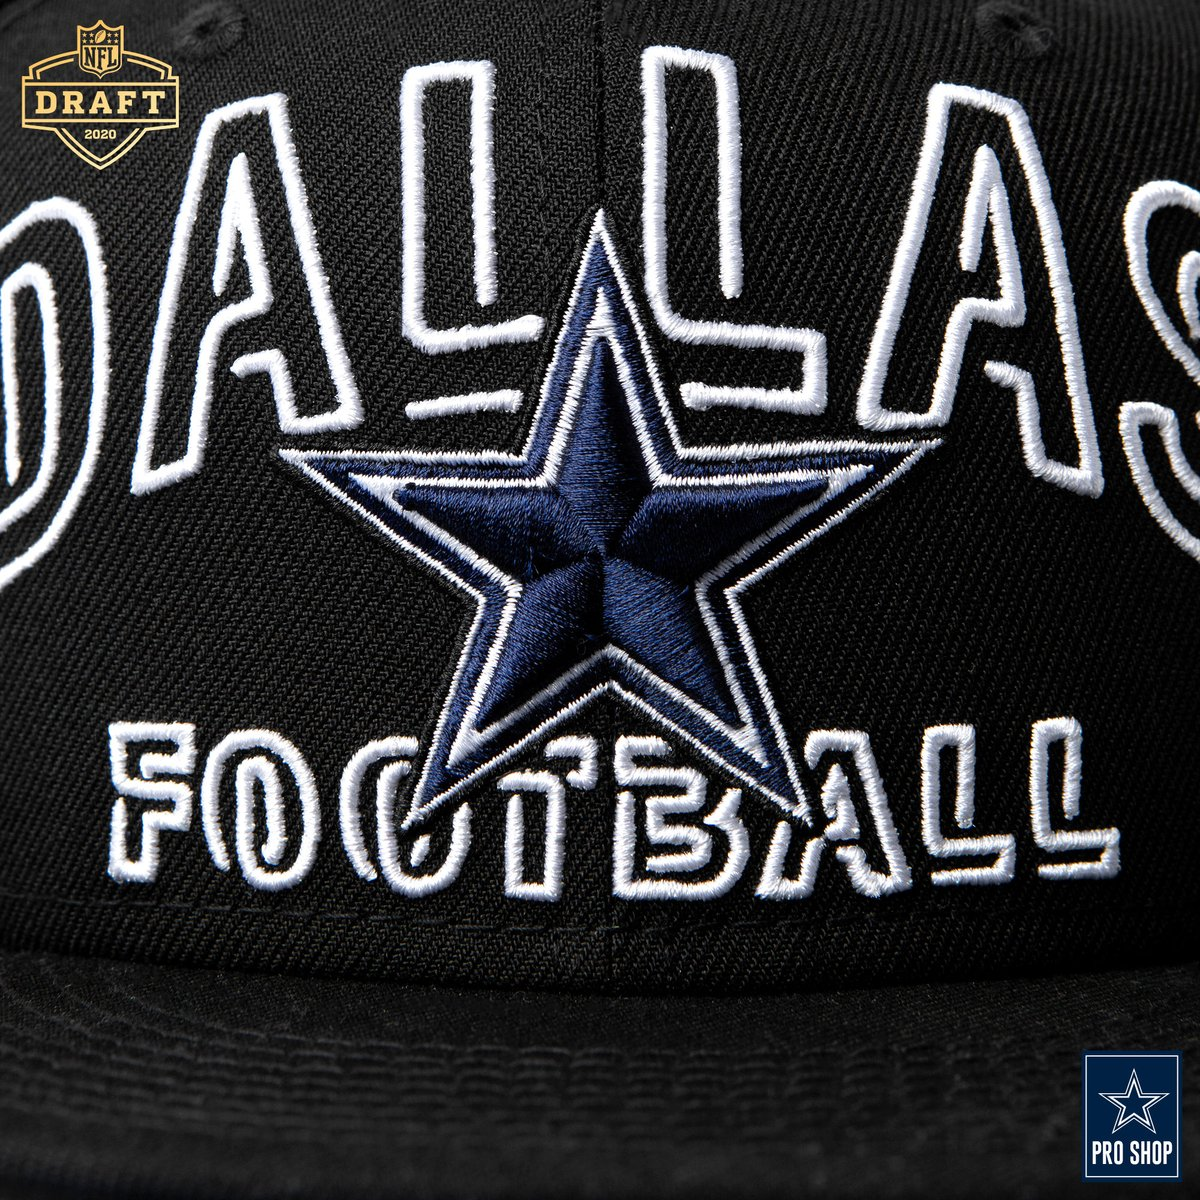 """It's been a month since the NFL Draft and, yes, we're still SUPER hyped about the #DallasCowboys draft class!  Grab your #CowboysNation New Era draft cap & board the """"hype train"""" with us for the 2020 season: https://t.co/gMvgpskdCX https://t.co/7SDqlLm5gt"""